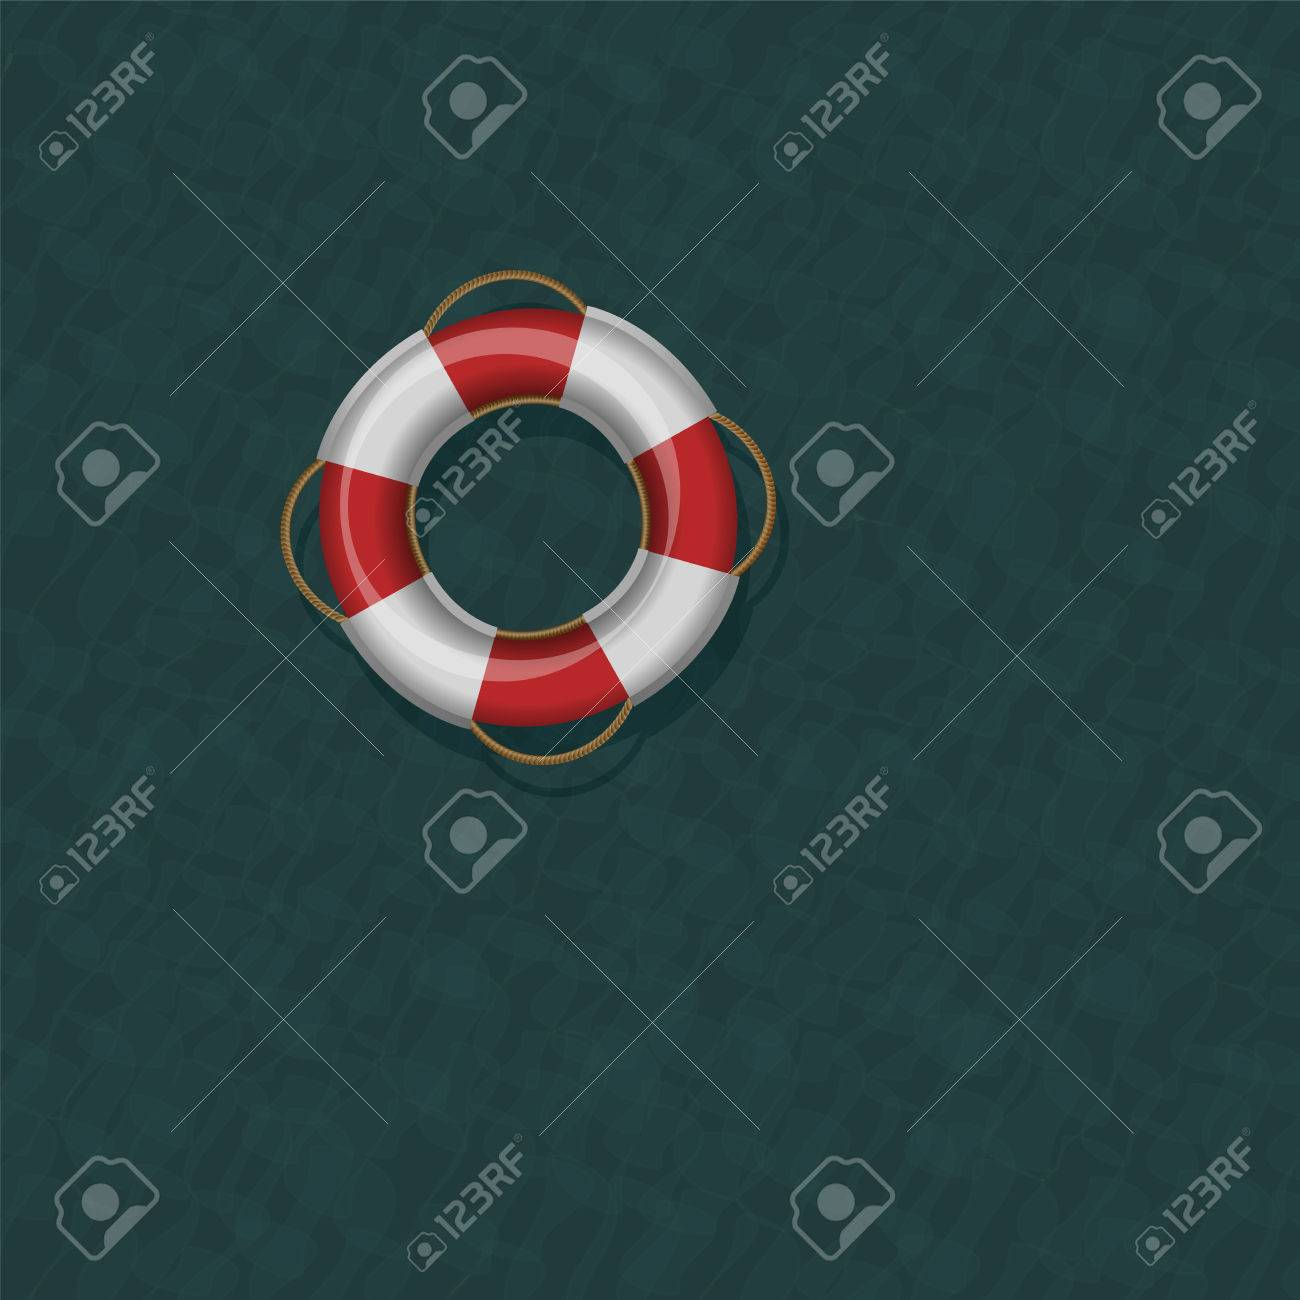 Lifebelt Floating On Dark Greenish Blue Cold Ocean Water Vector